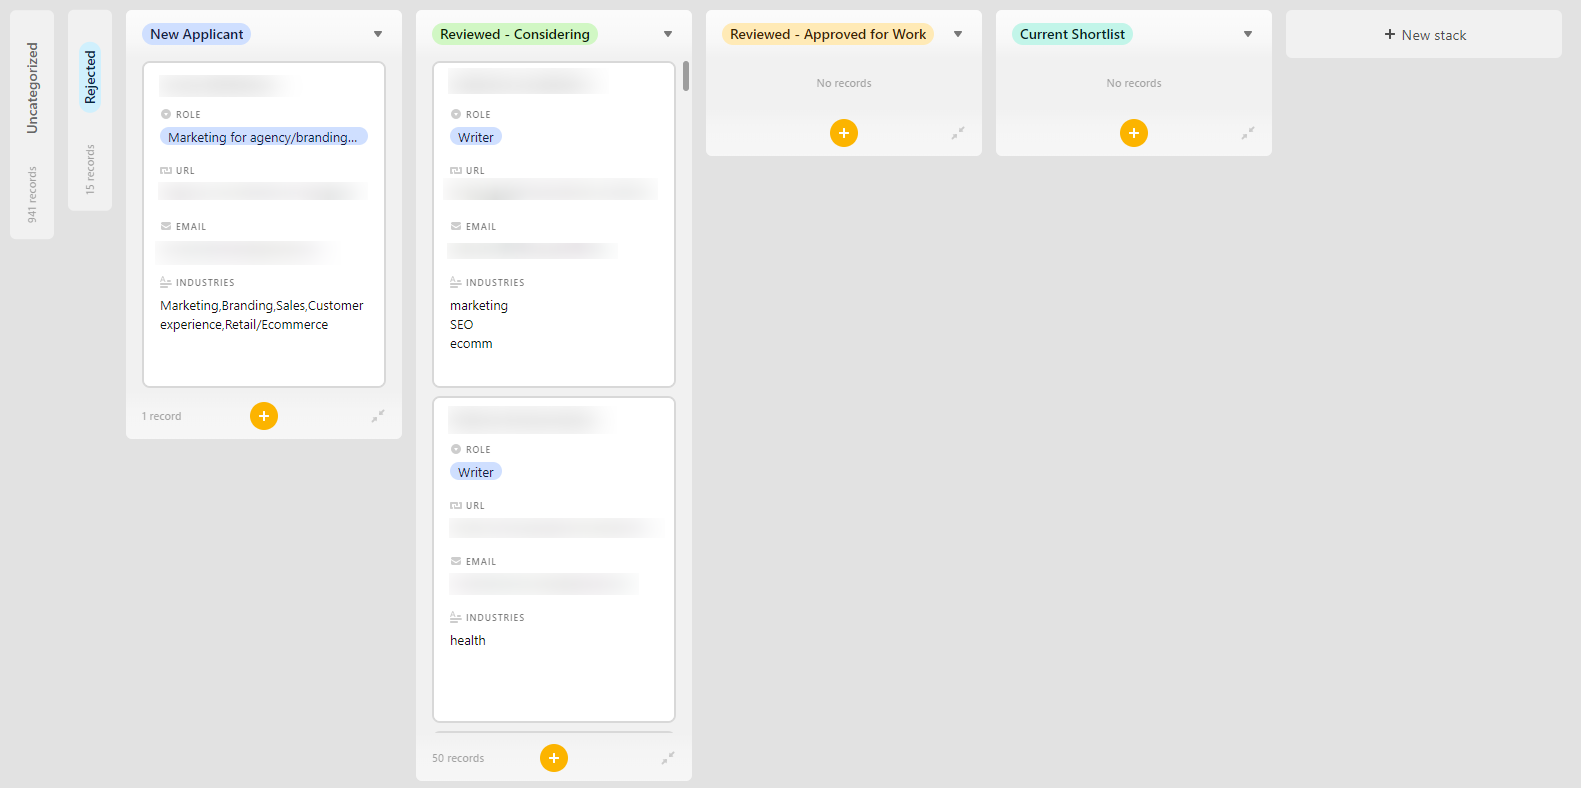 Company workflow automating by yesoptimist.com